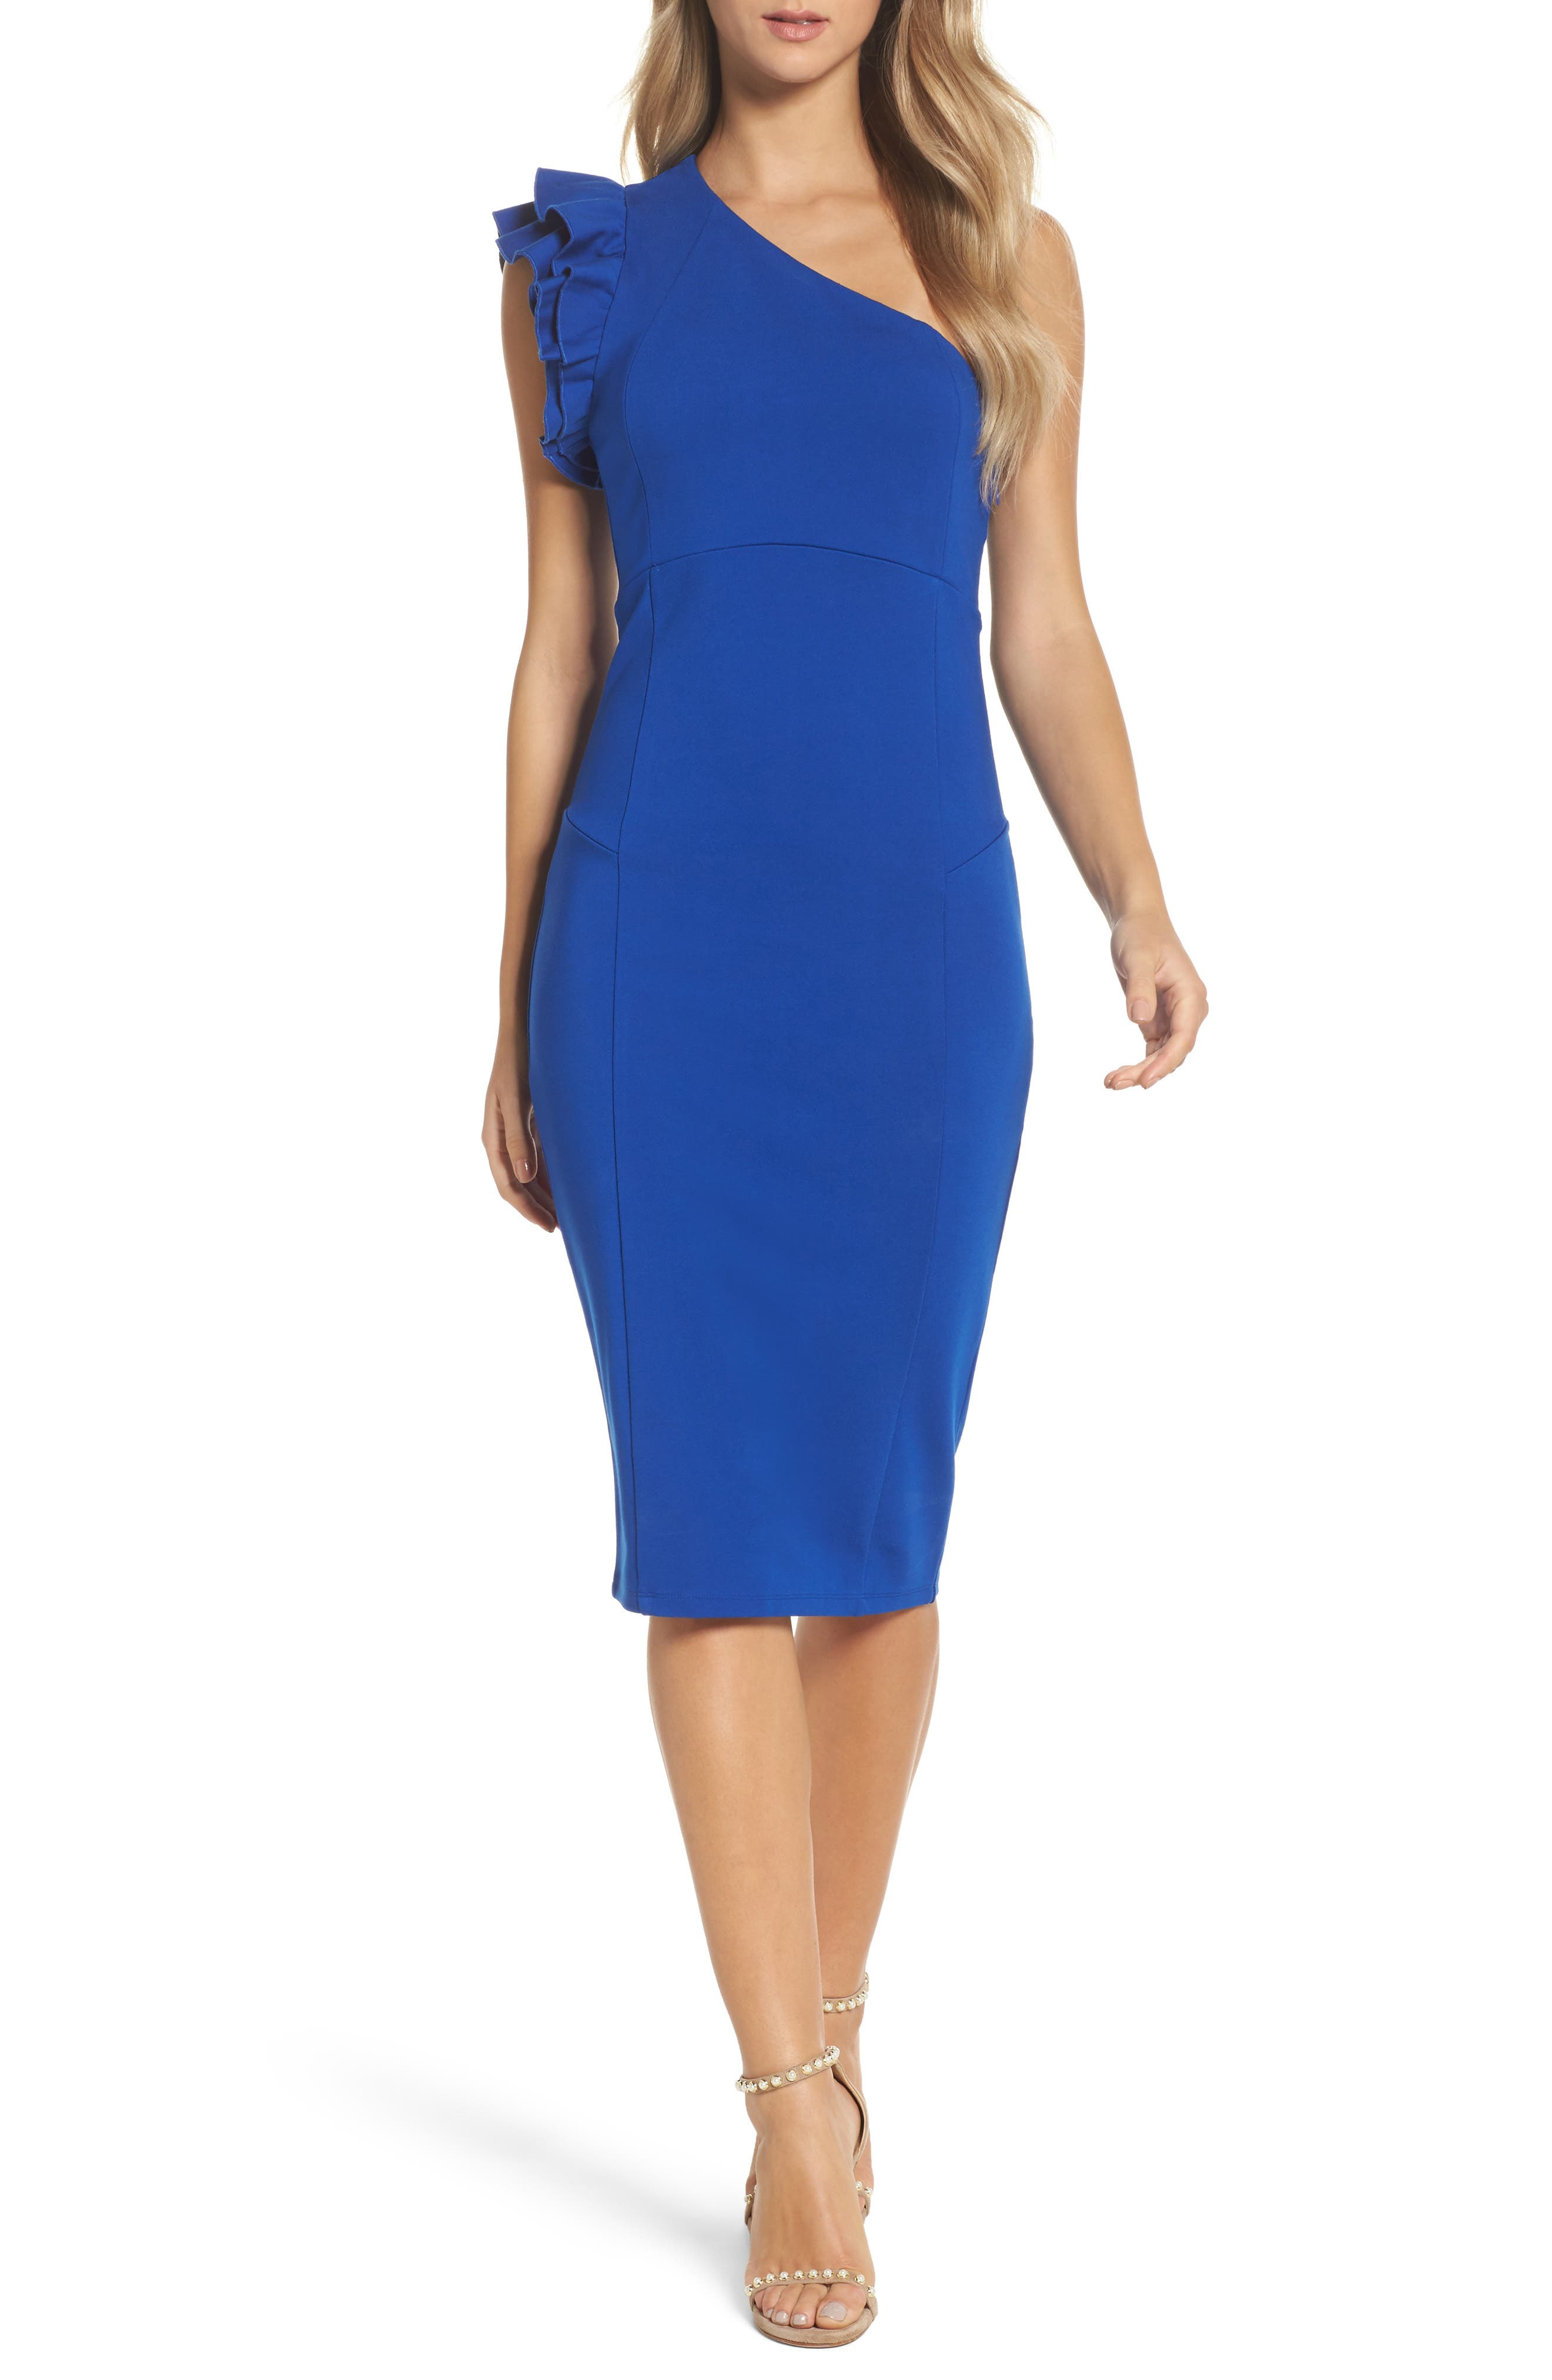 Felicity & Coco Marilyn One-Shoulder Sheath Dress (Nordstrom Exclusive)